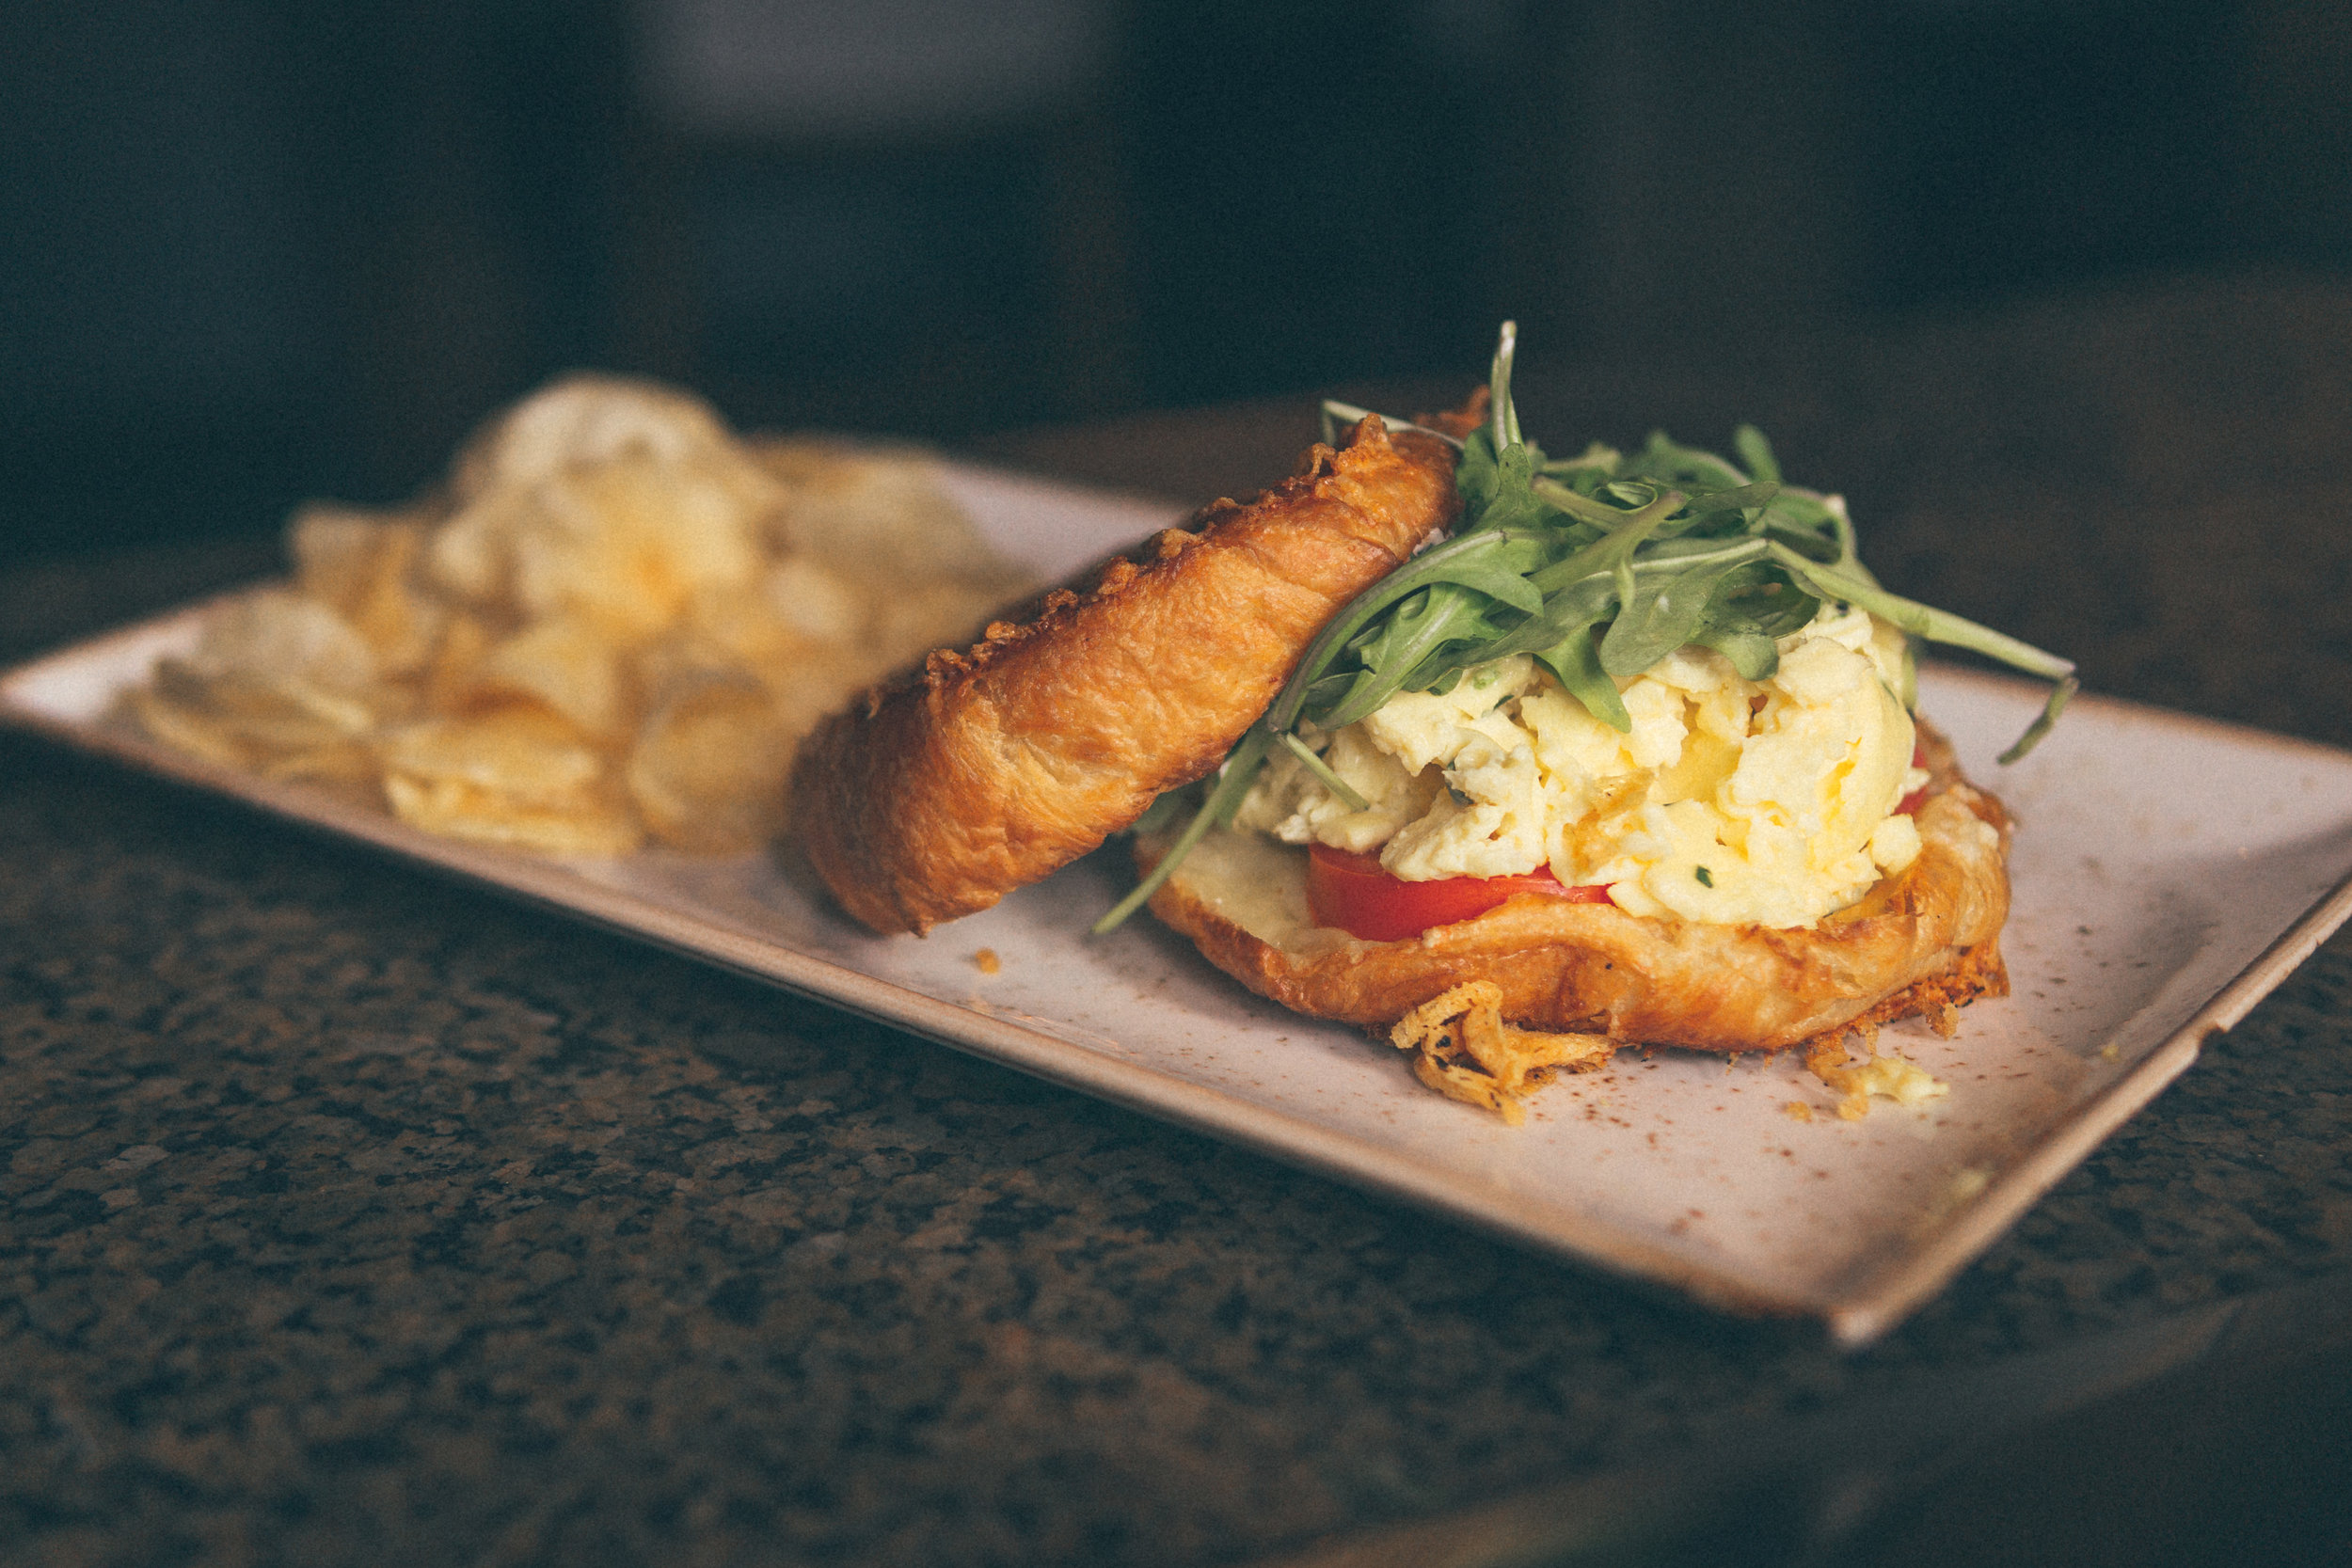 Alpine Egg Croissant: Parmesan-Toasted, Scrambled Egg, Alpine Cheese, Arugula, Tomato, Herbs, Green Goddess